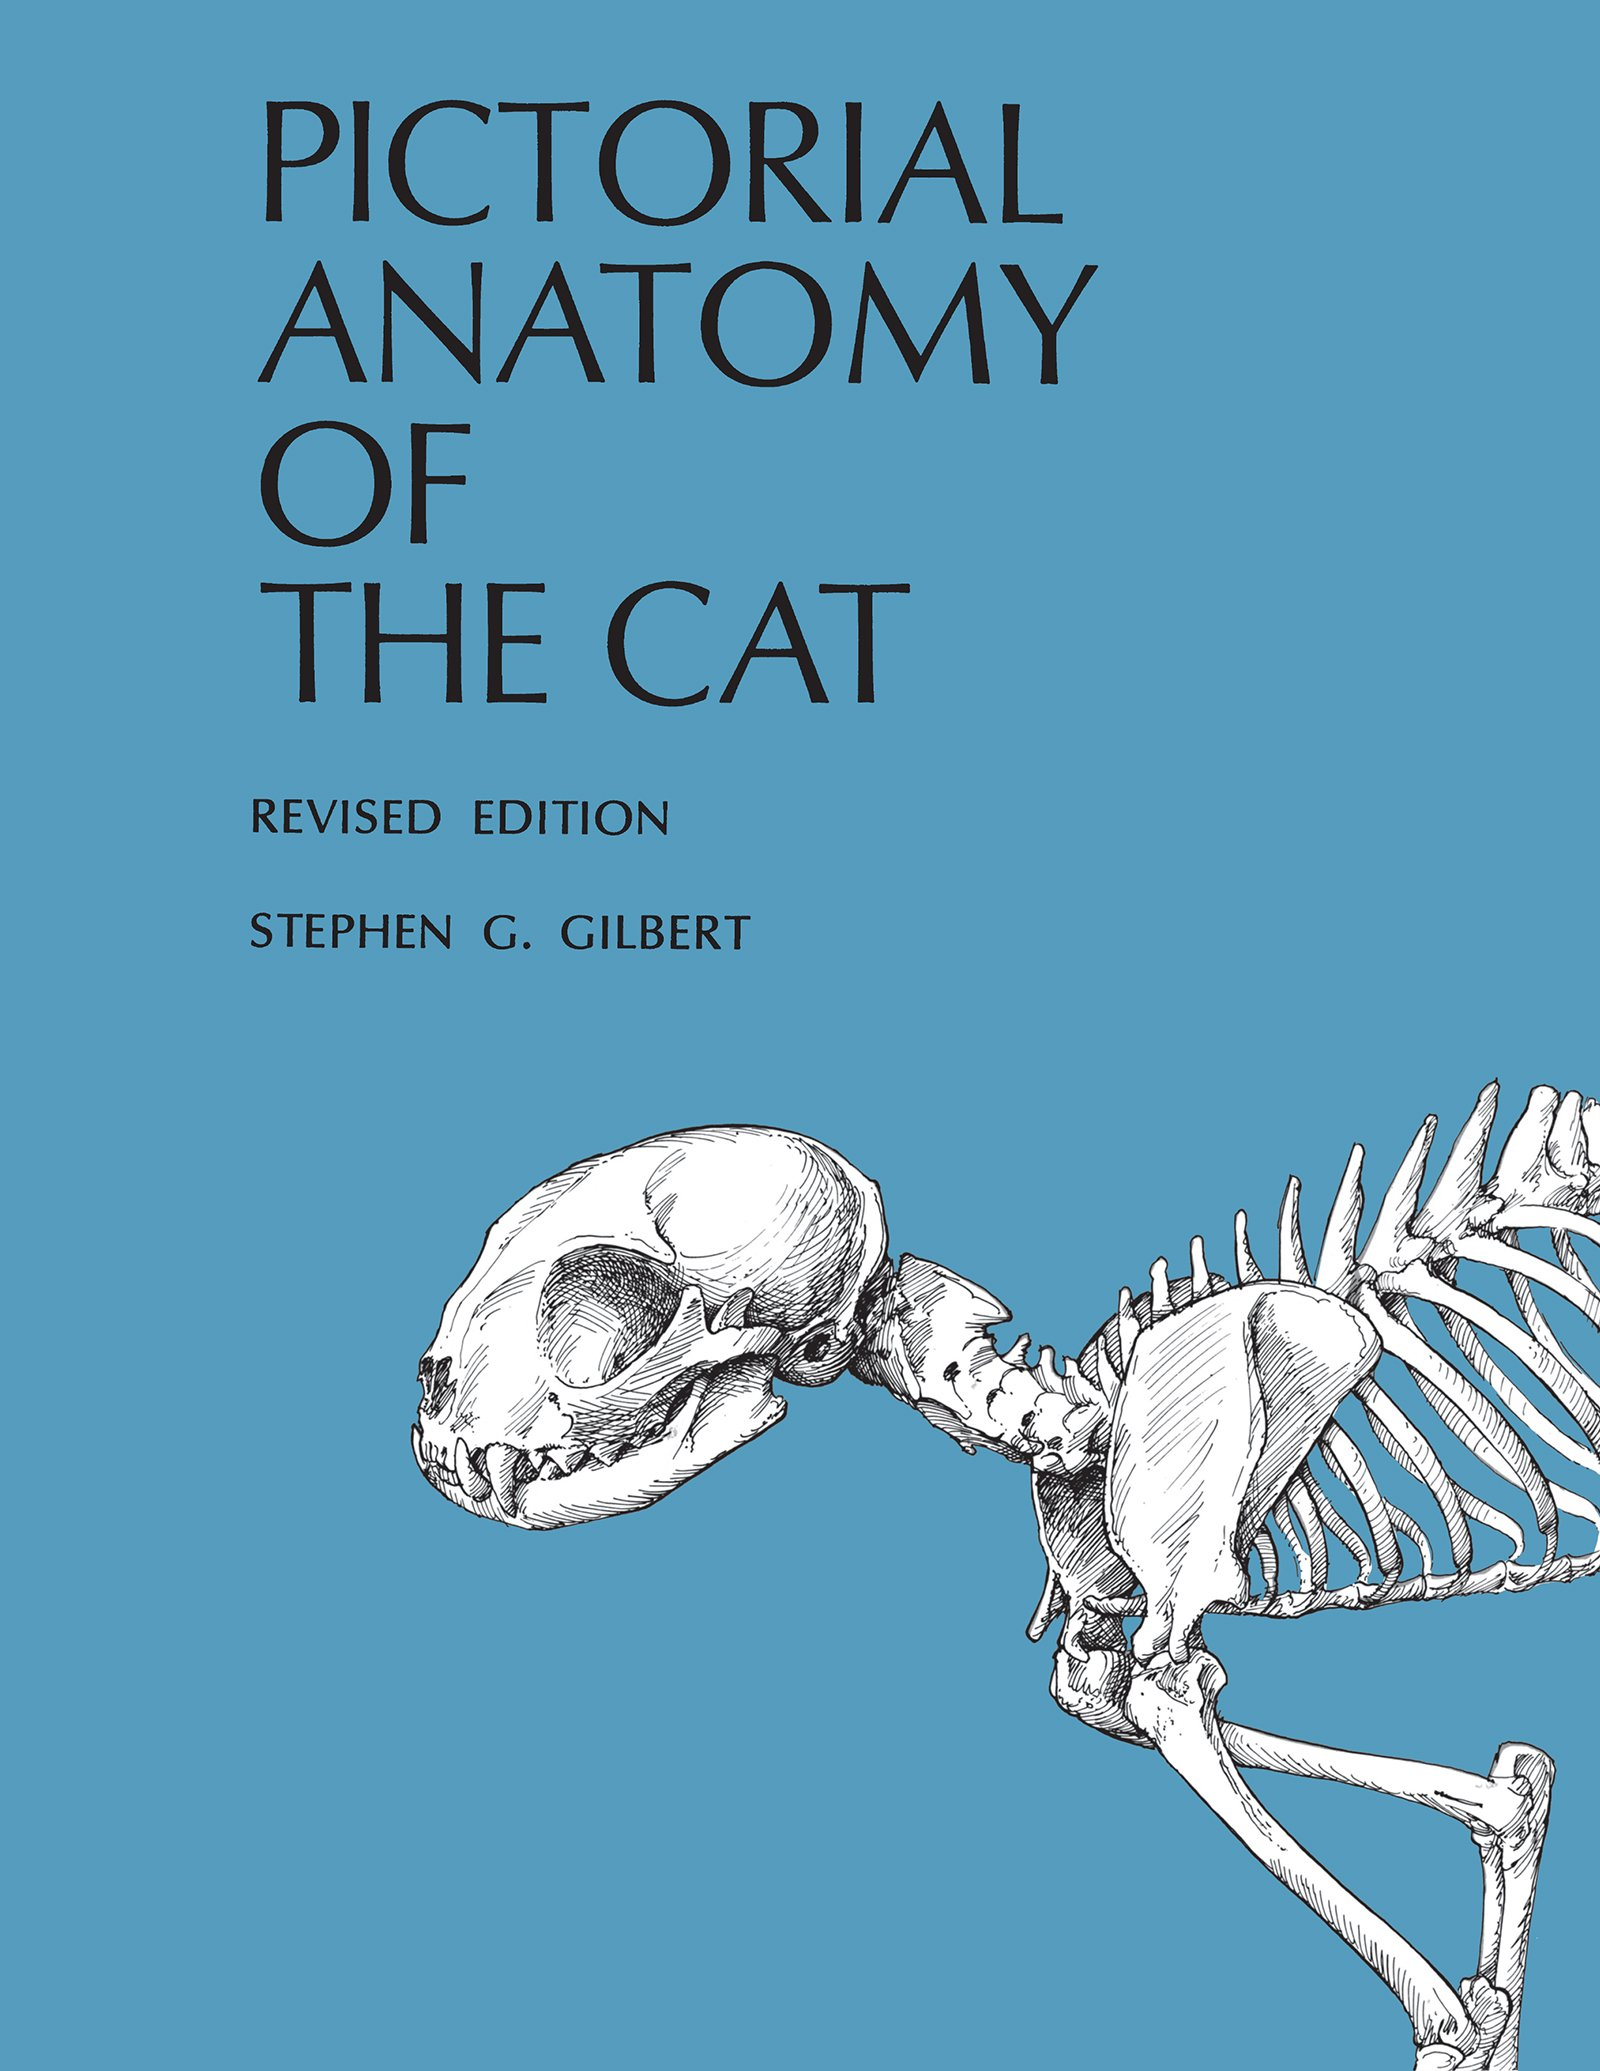 Pictorial Anatomy of the Cat: Amazon.co.uk: Stephen G. Gilbert ...